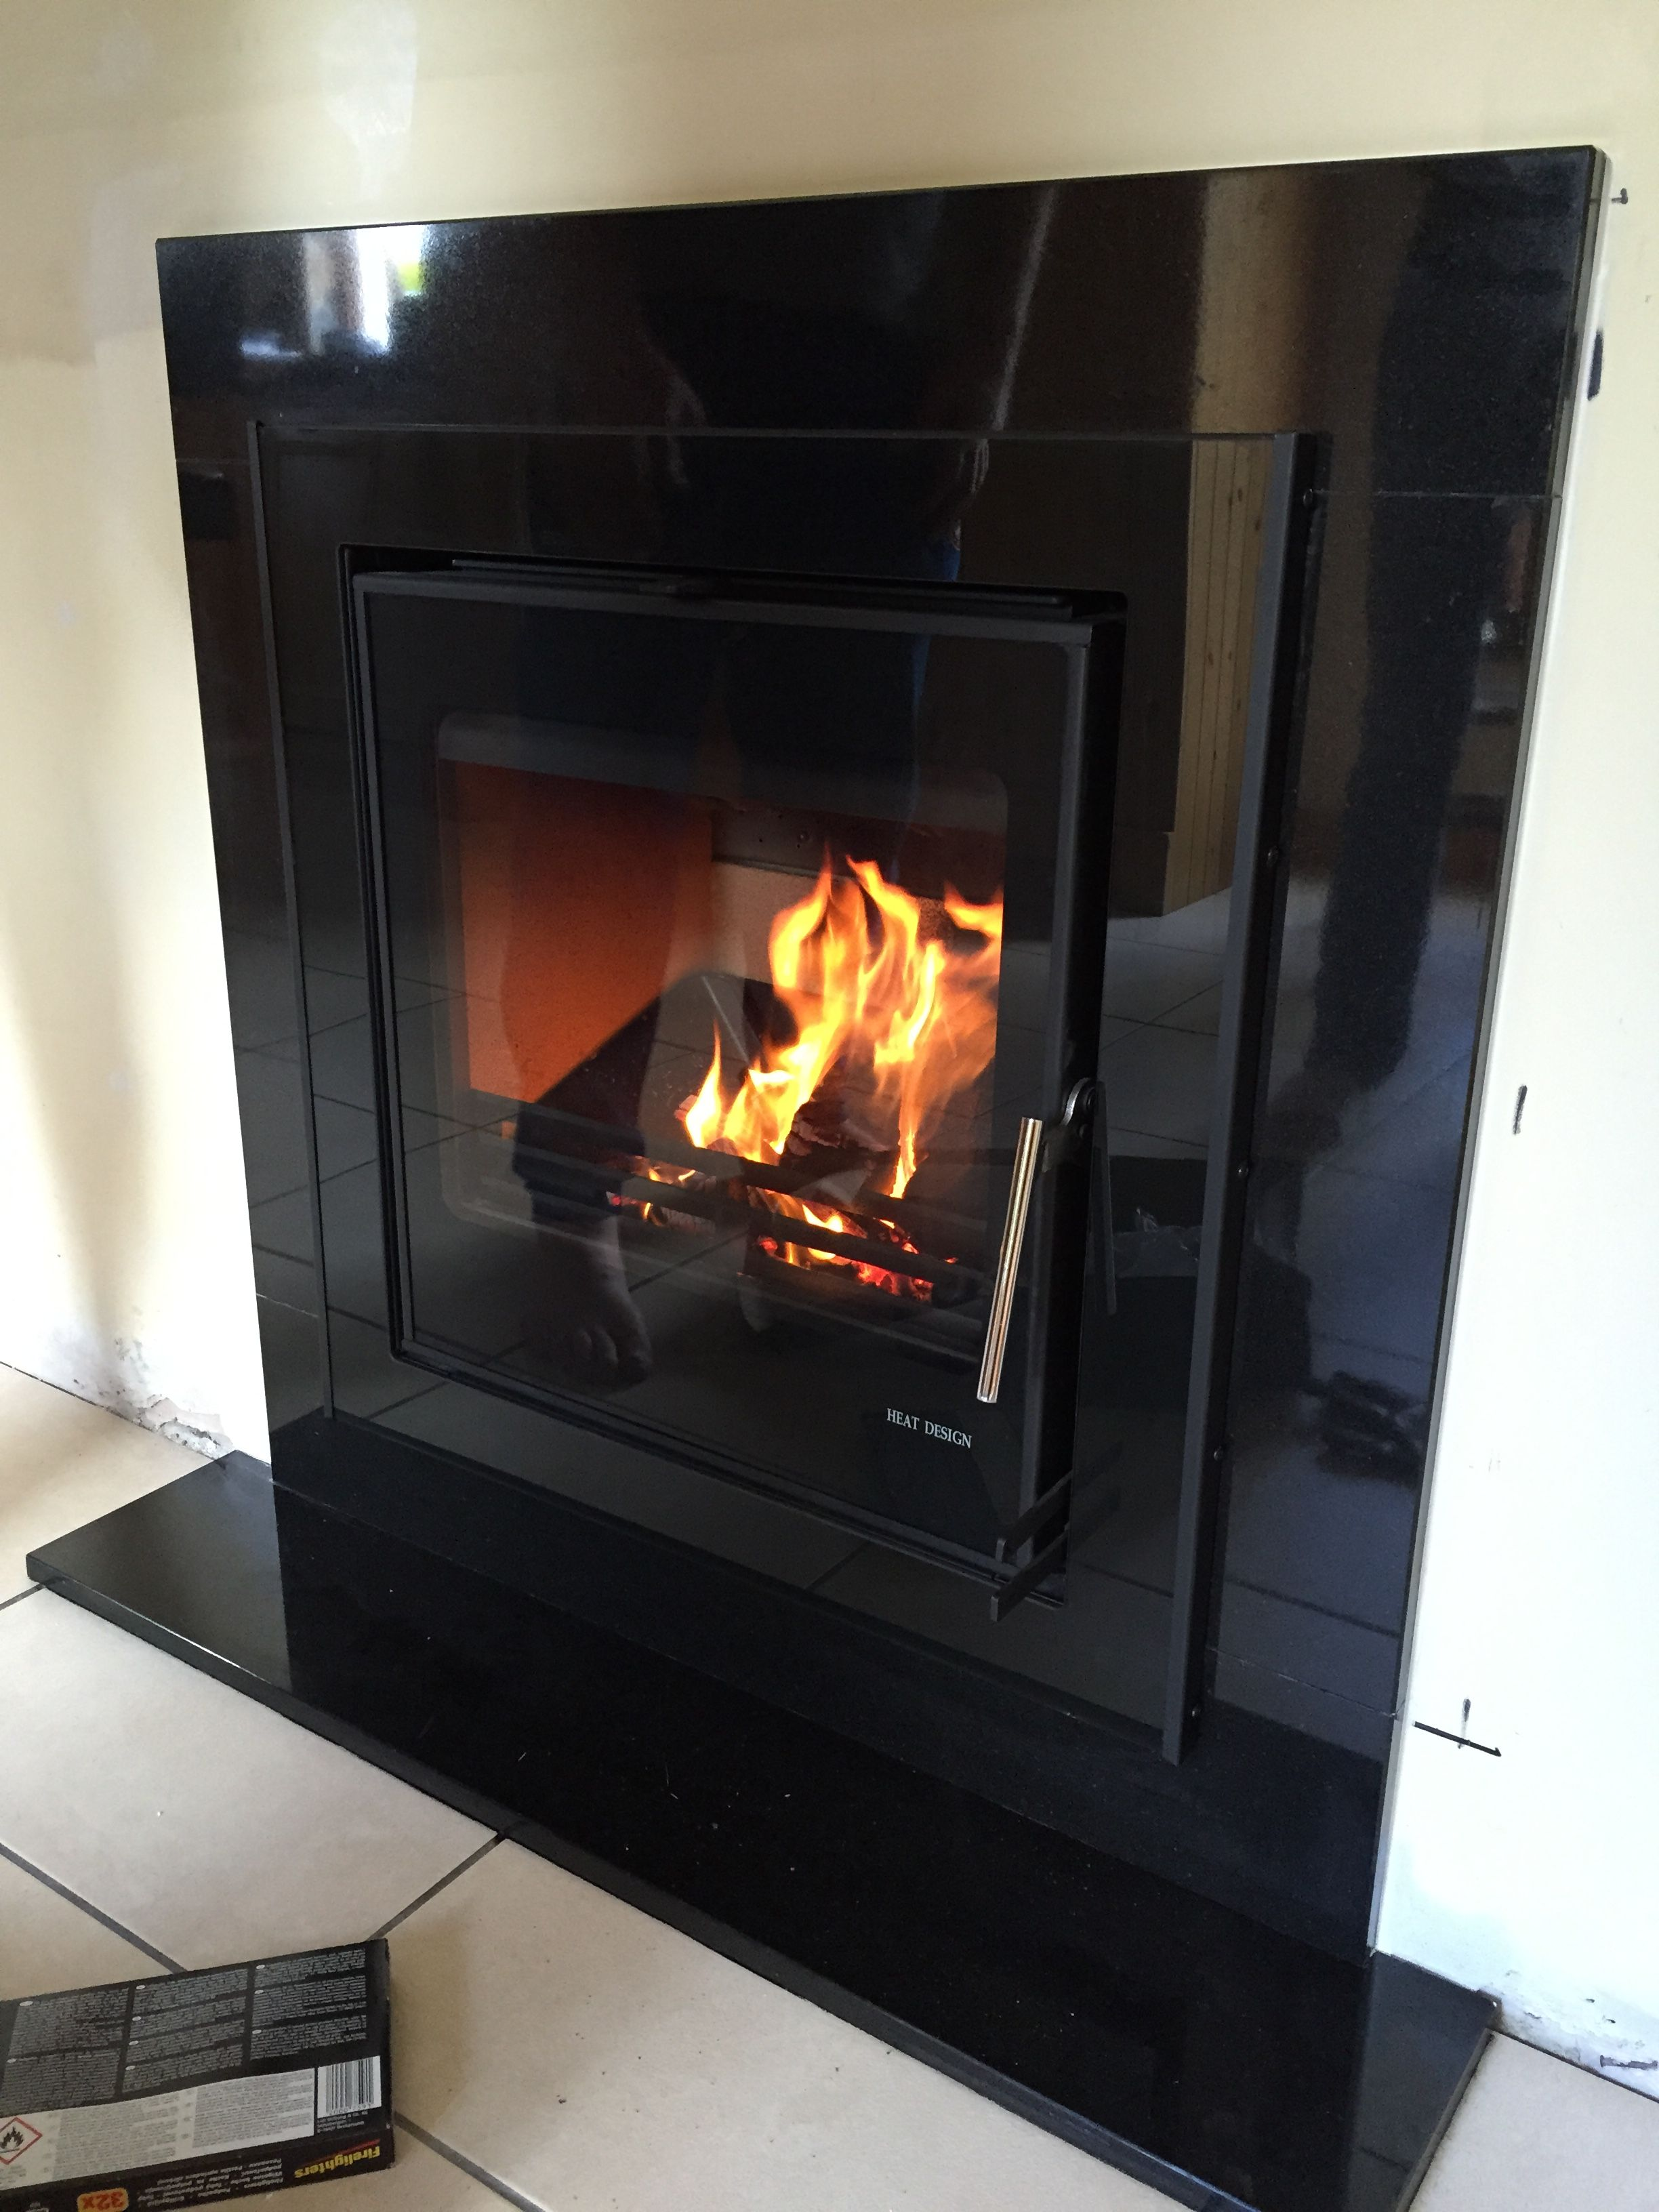 Cheminees Philippe Rivedoux 9kw Pin By Kris Wilson On Fire And Hearth In 2019 Multi Fuel Stove